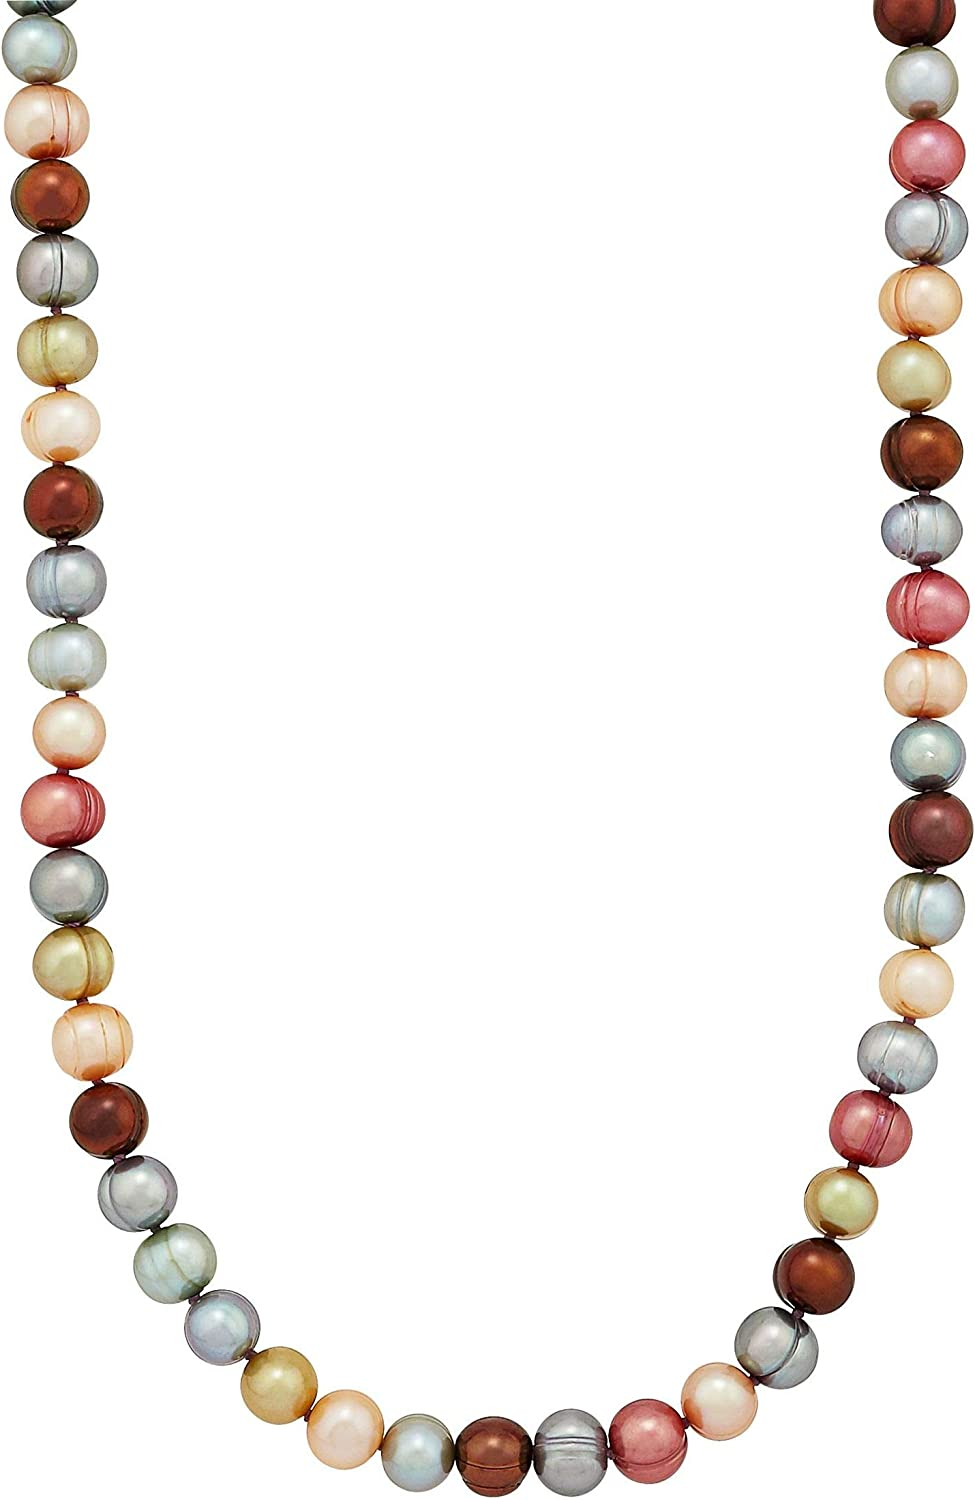 Amazon Com Honora 7 8 Mm Gelato Ringed Freshwater Cultured Potato Pearl Strand Necklace In Sterling Silver 36 Clothing